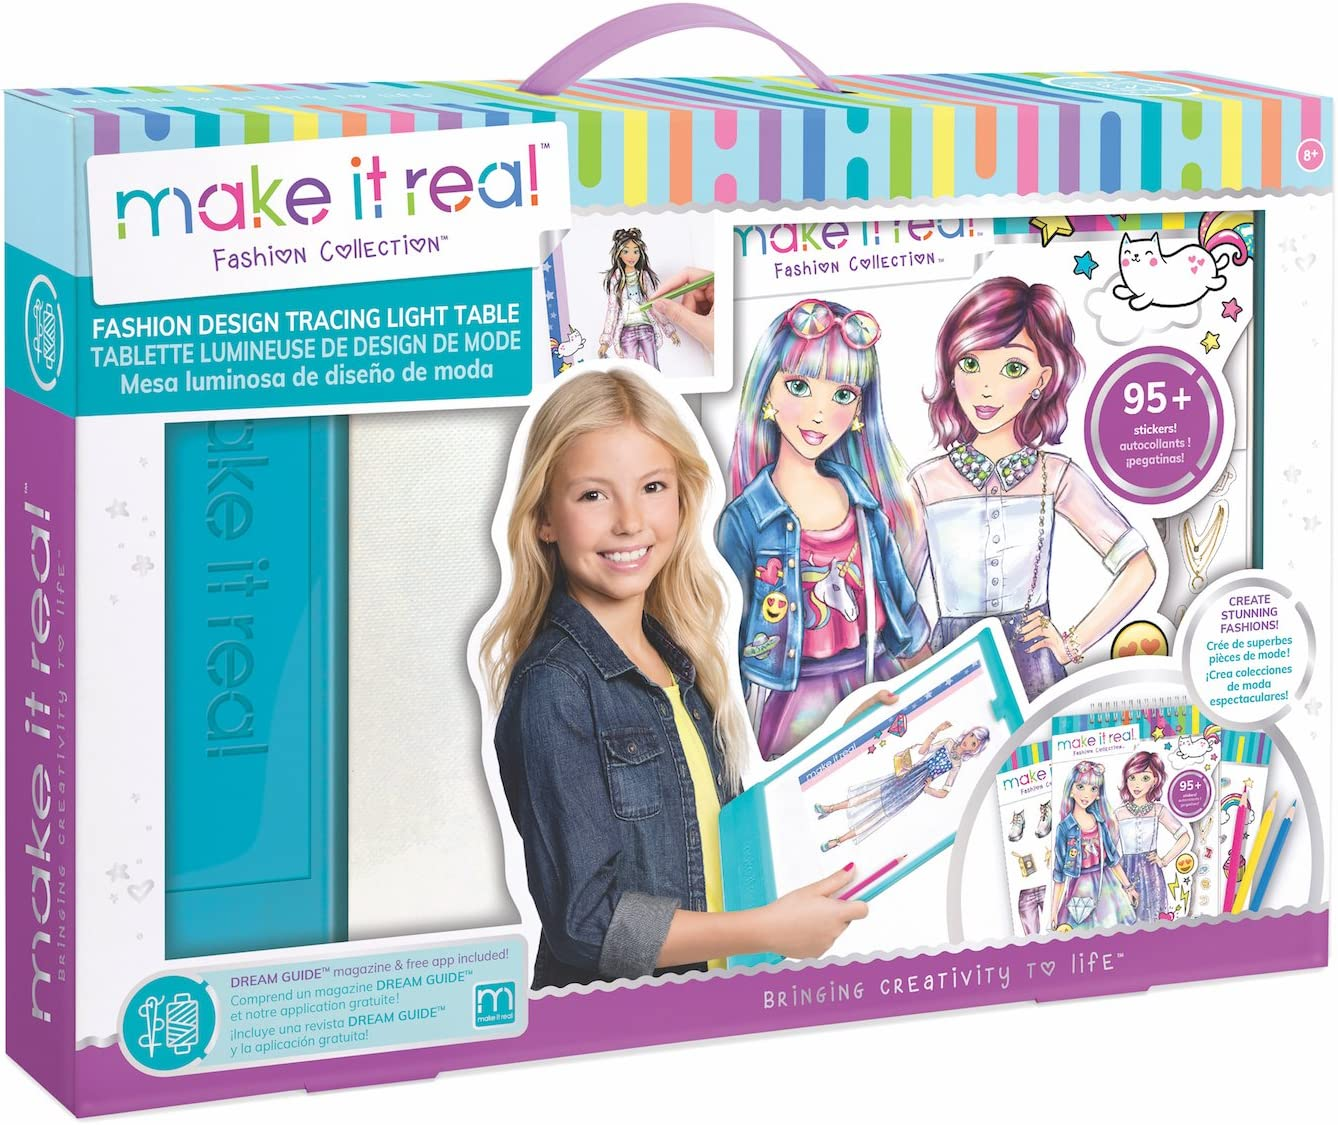 Make It Real - Fashion Design Mega Set with Light Table. Kids Fashion Design Kit Includes Light Table, Colored Pencils, Sketchbook, Stencils, Stickers, Design Guide and More